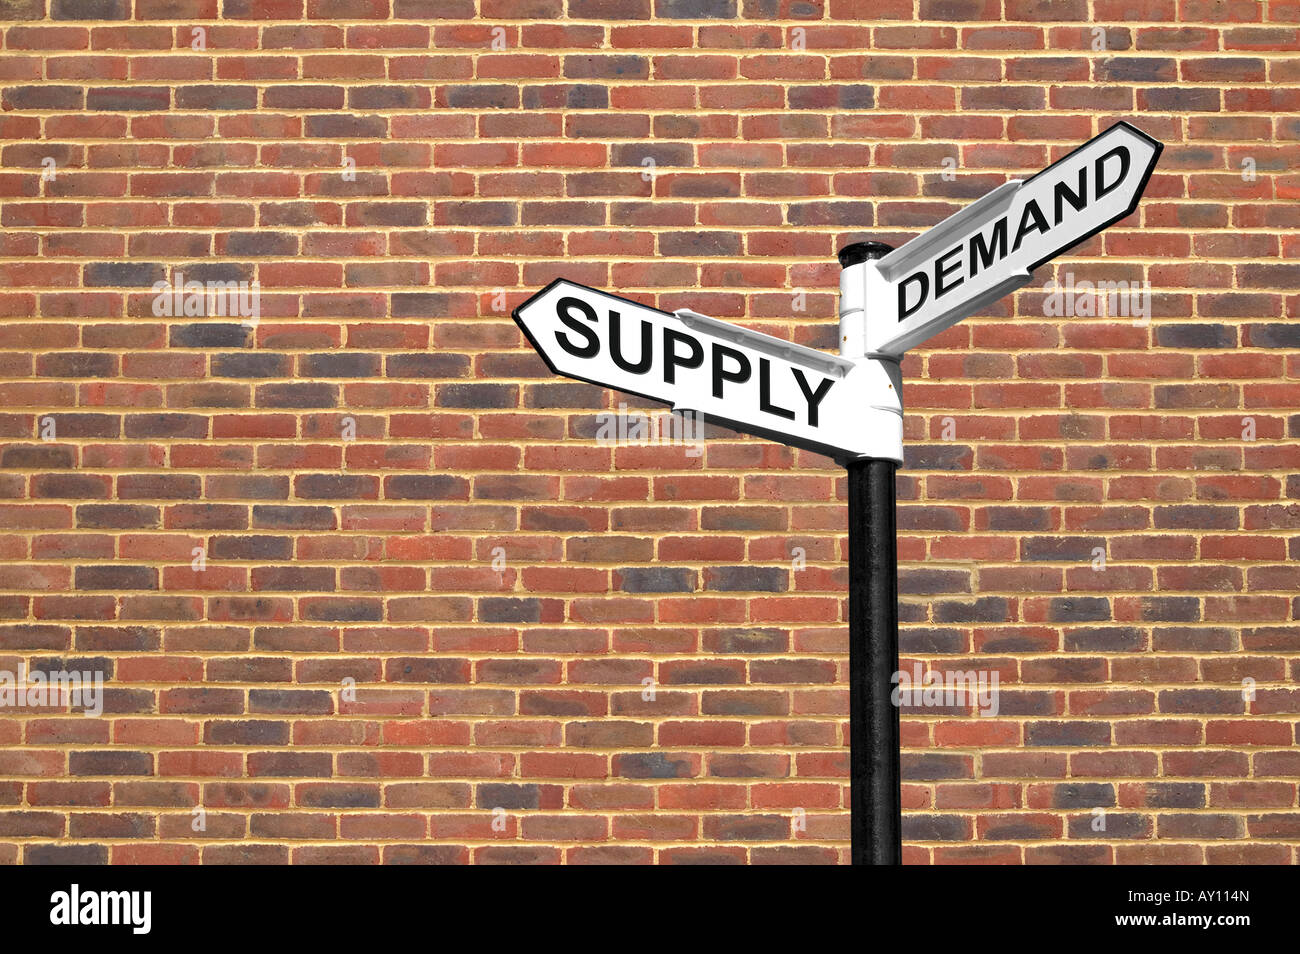 Concept image of a signpost with Supply and Demand against a brick wall - Stock Image